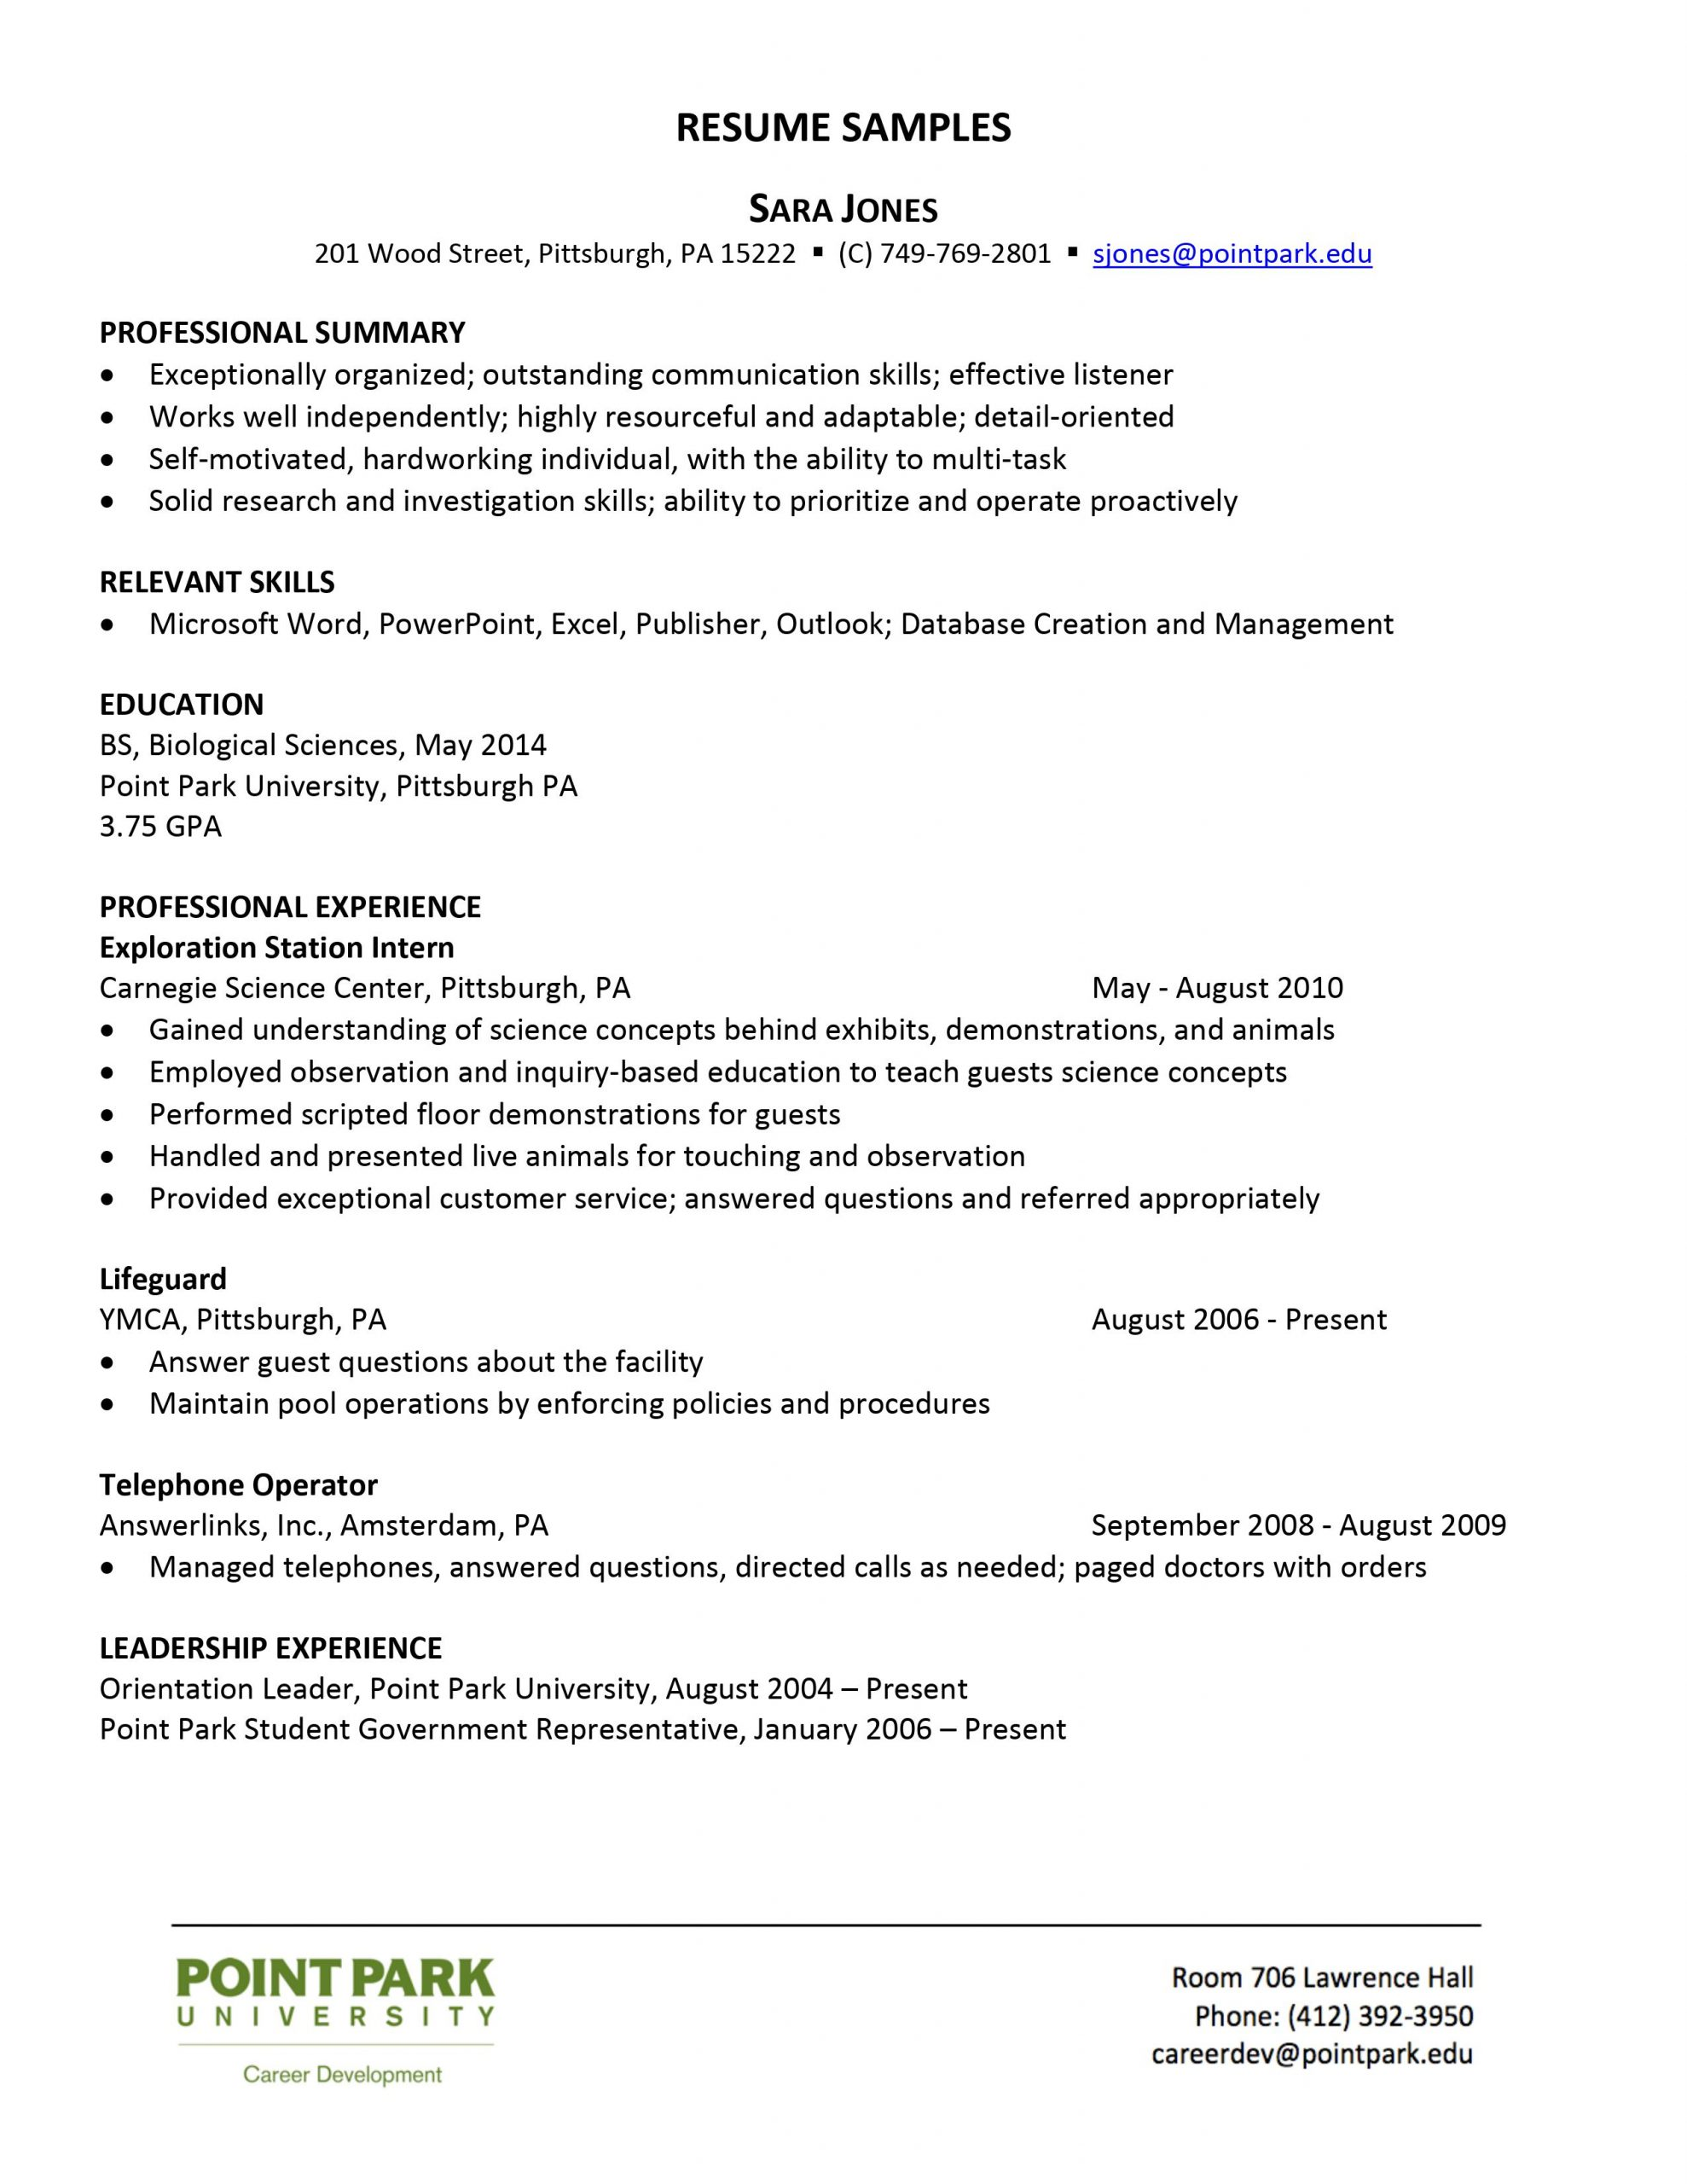 Paralegal .Docx (Word)